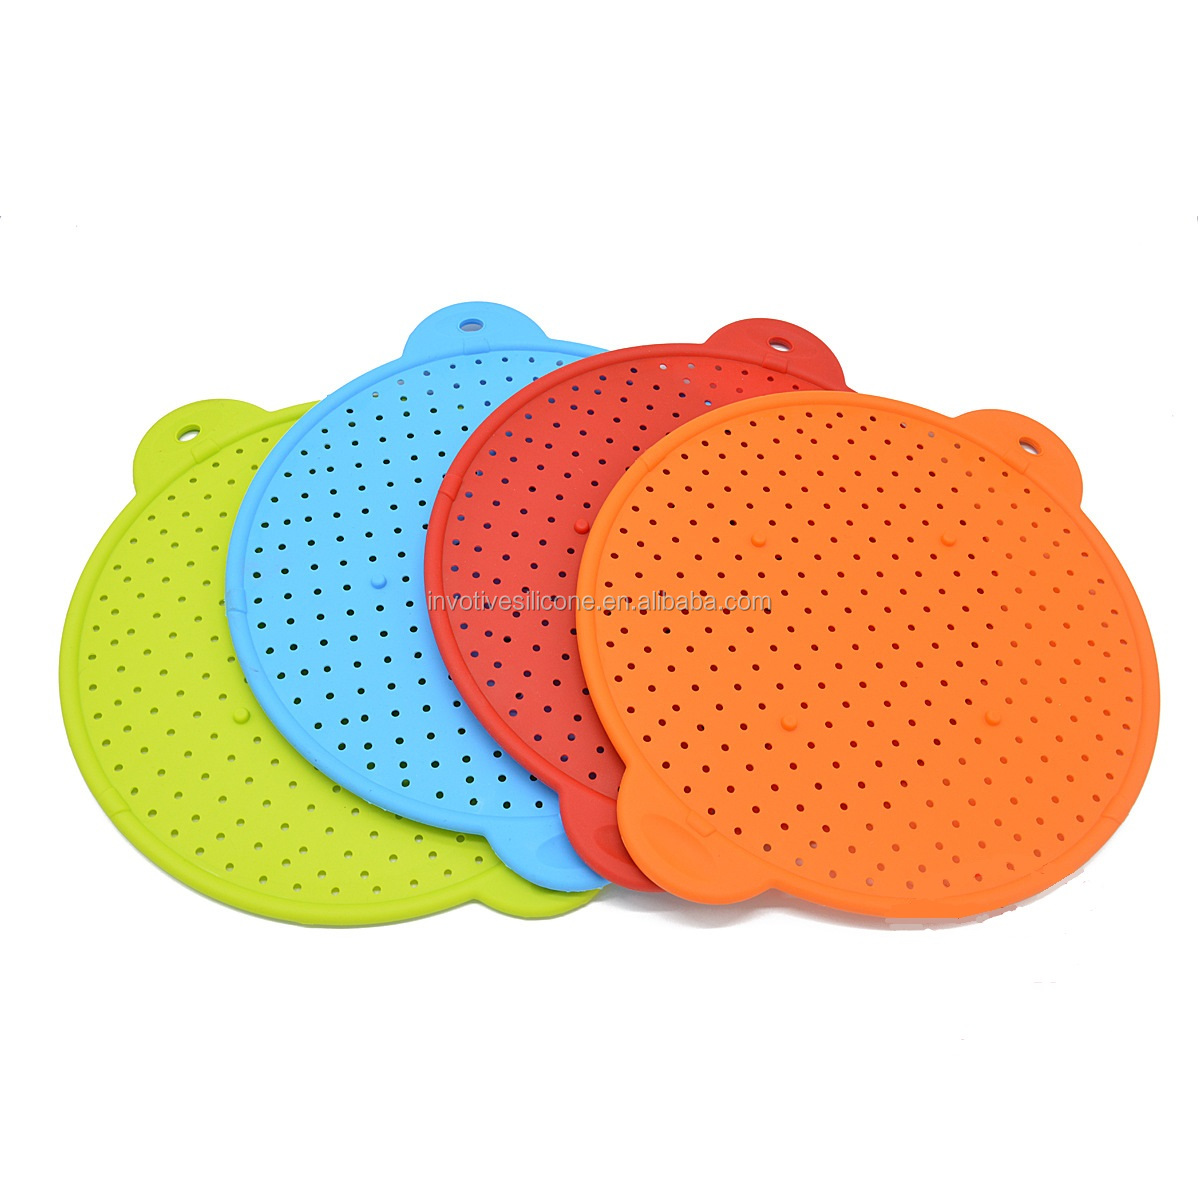 Invotive Wholesale silicone mat factory for trade partner-3